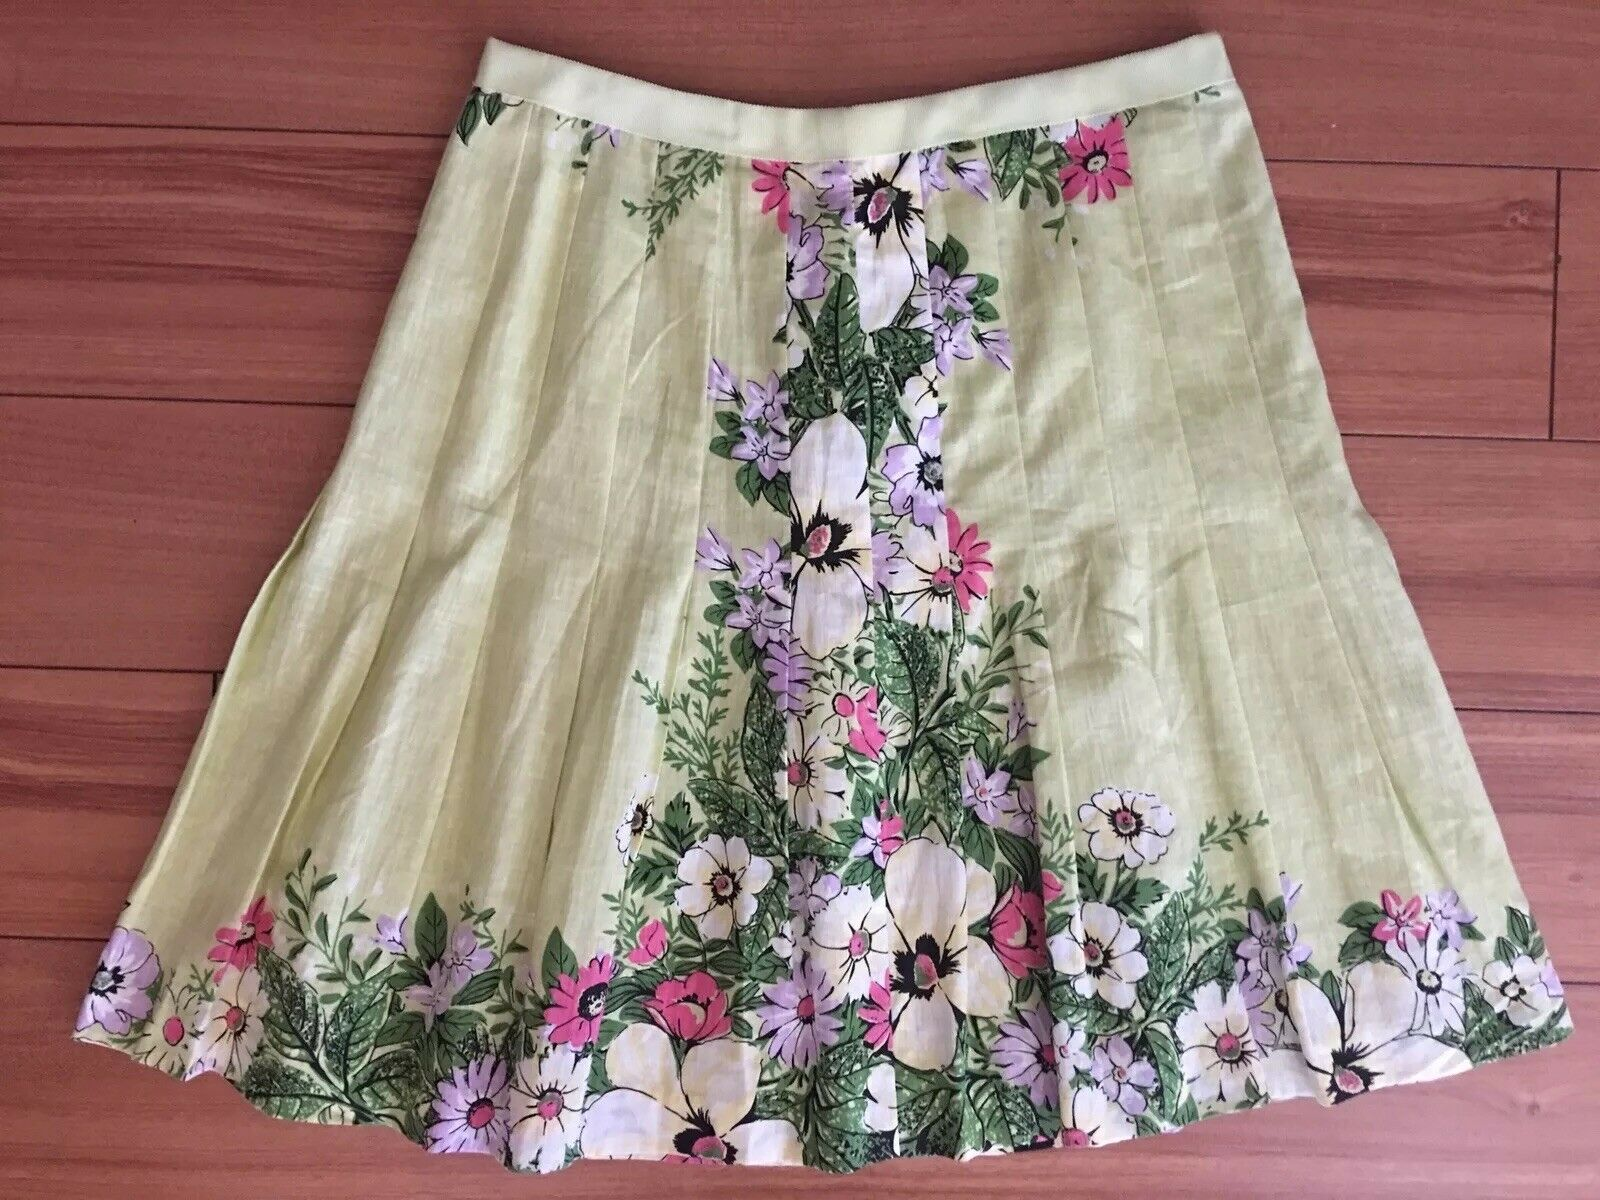 ANN TAYLOR LOFT Cotton Floral Lined Skirt 75% Cotton 25% Silk  Women's 6P